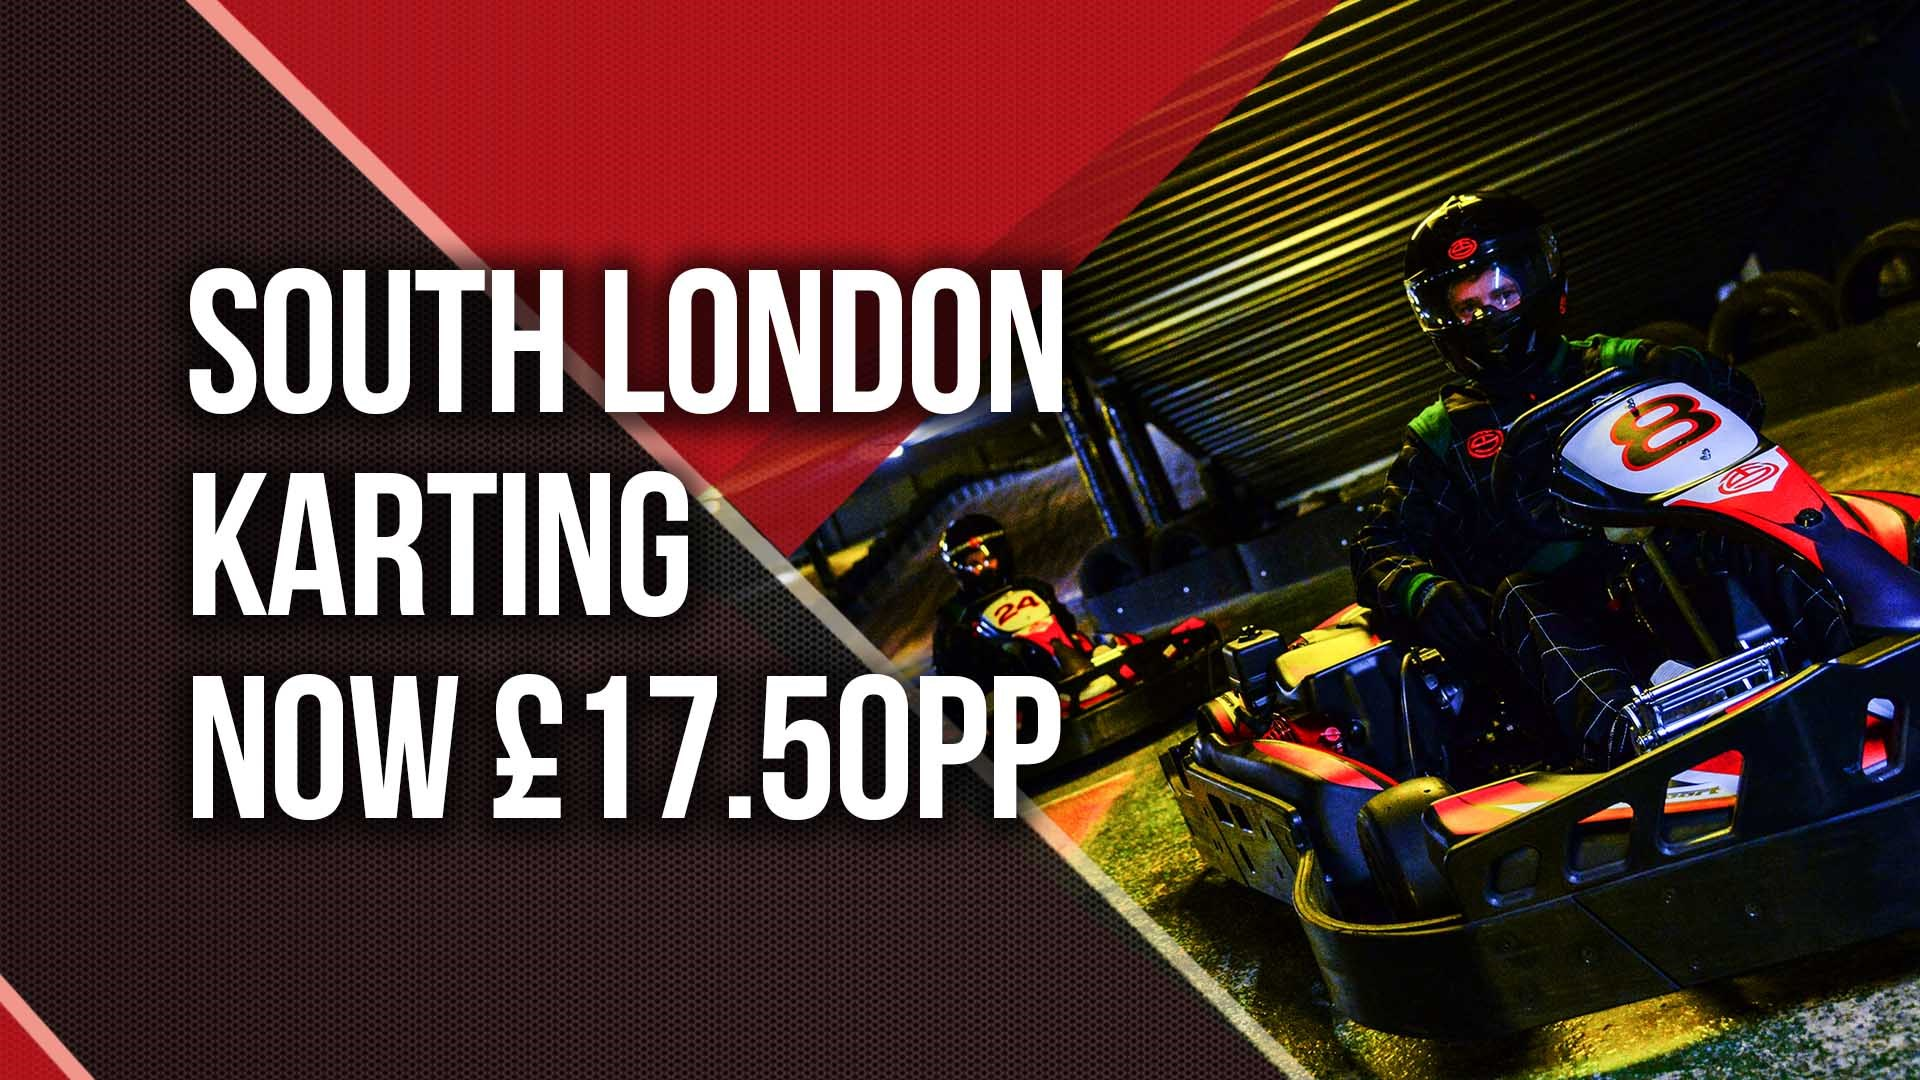 UNBEATABLE GO KARTING OFFERS - £17.50 Karting in South London